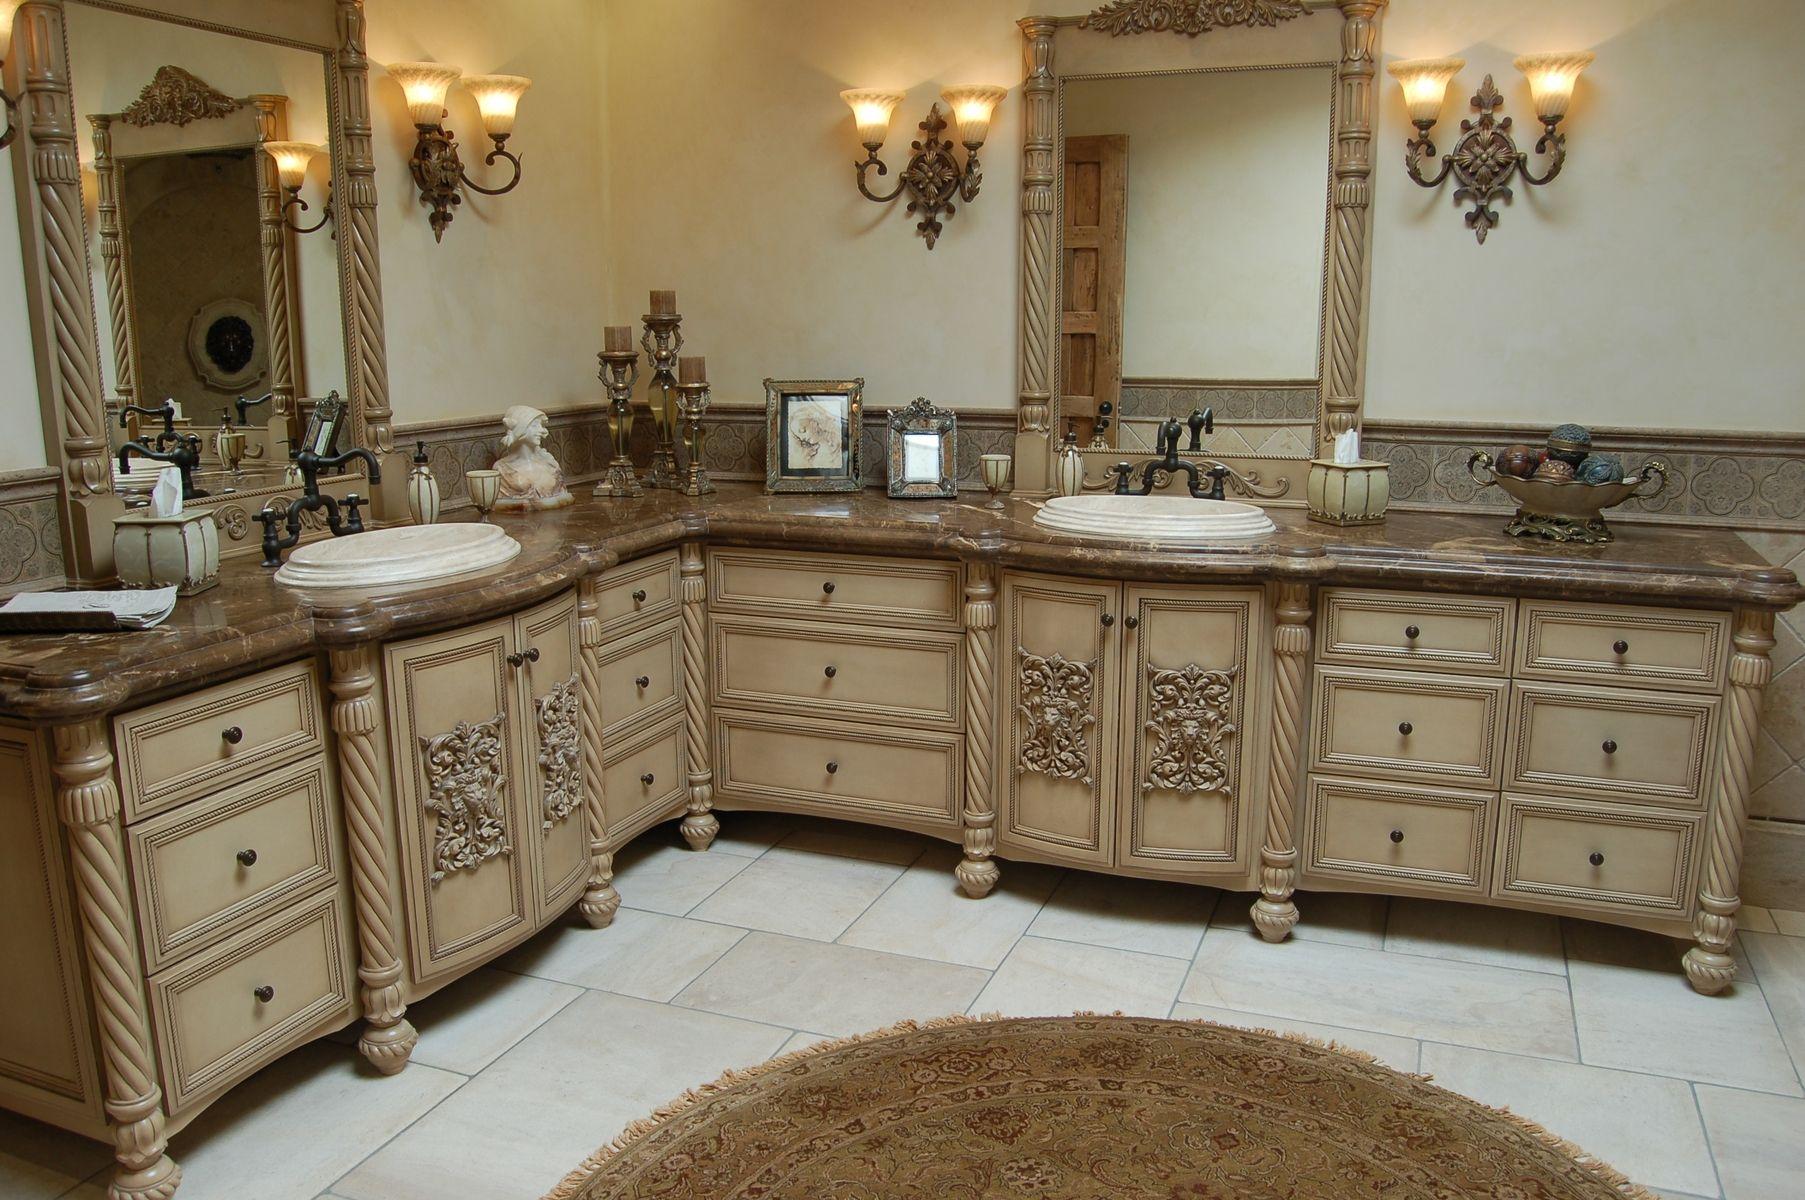 shared to makes mn design decorating beautiful nice cabinets custom glamorous are go cabinetry of such on cabinet the good bathroom bath vanities